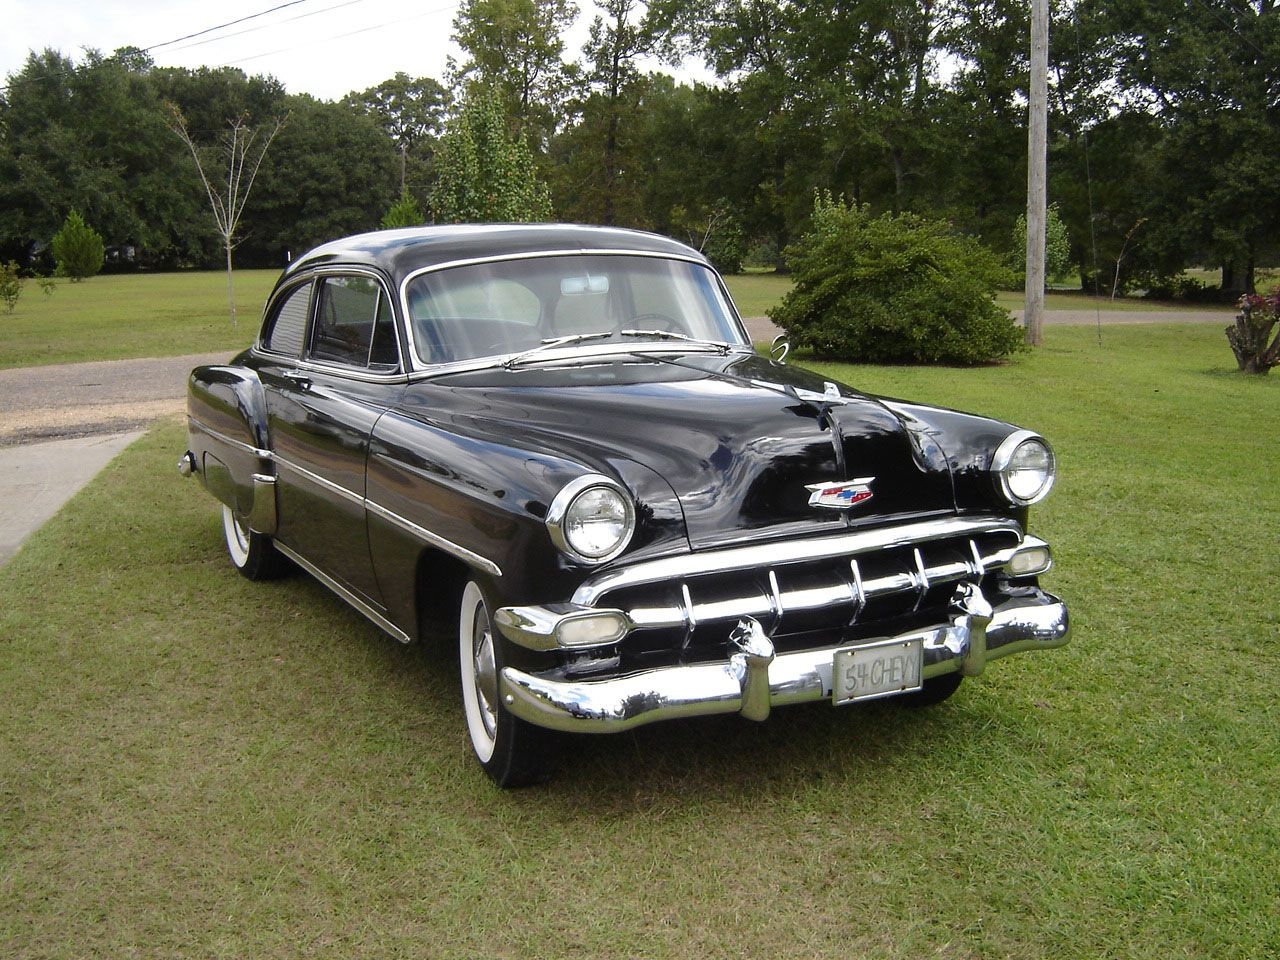 1954 Chevy Maintenance Of Old Vehicles The Material For New Cogs Casters Gears Pads Could Be Cast Polyamide American Classic Cars Chevrolet Chevrolet Bel Air